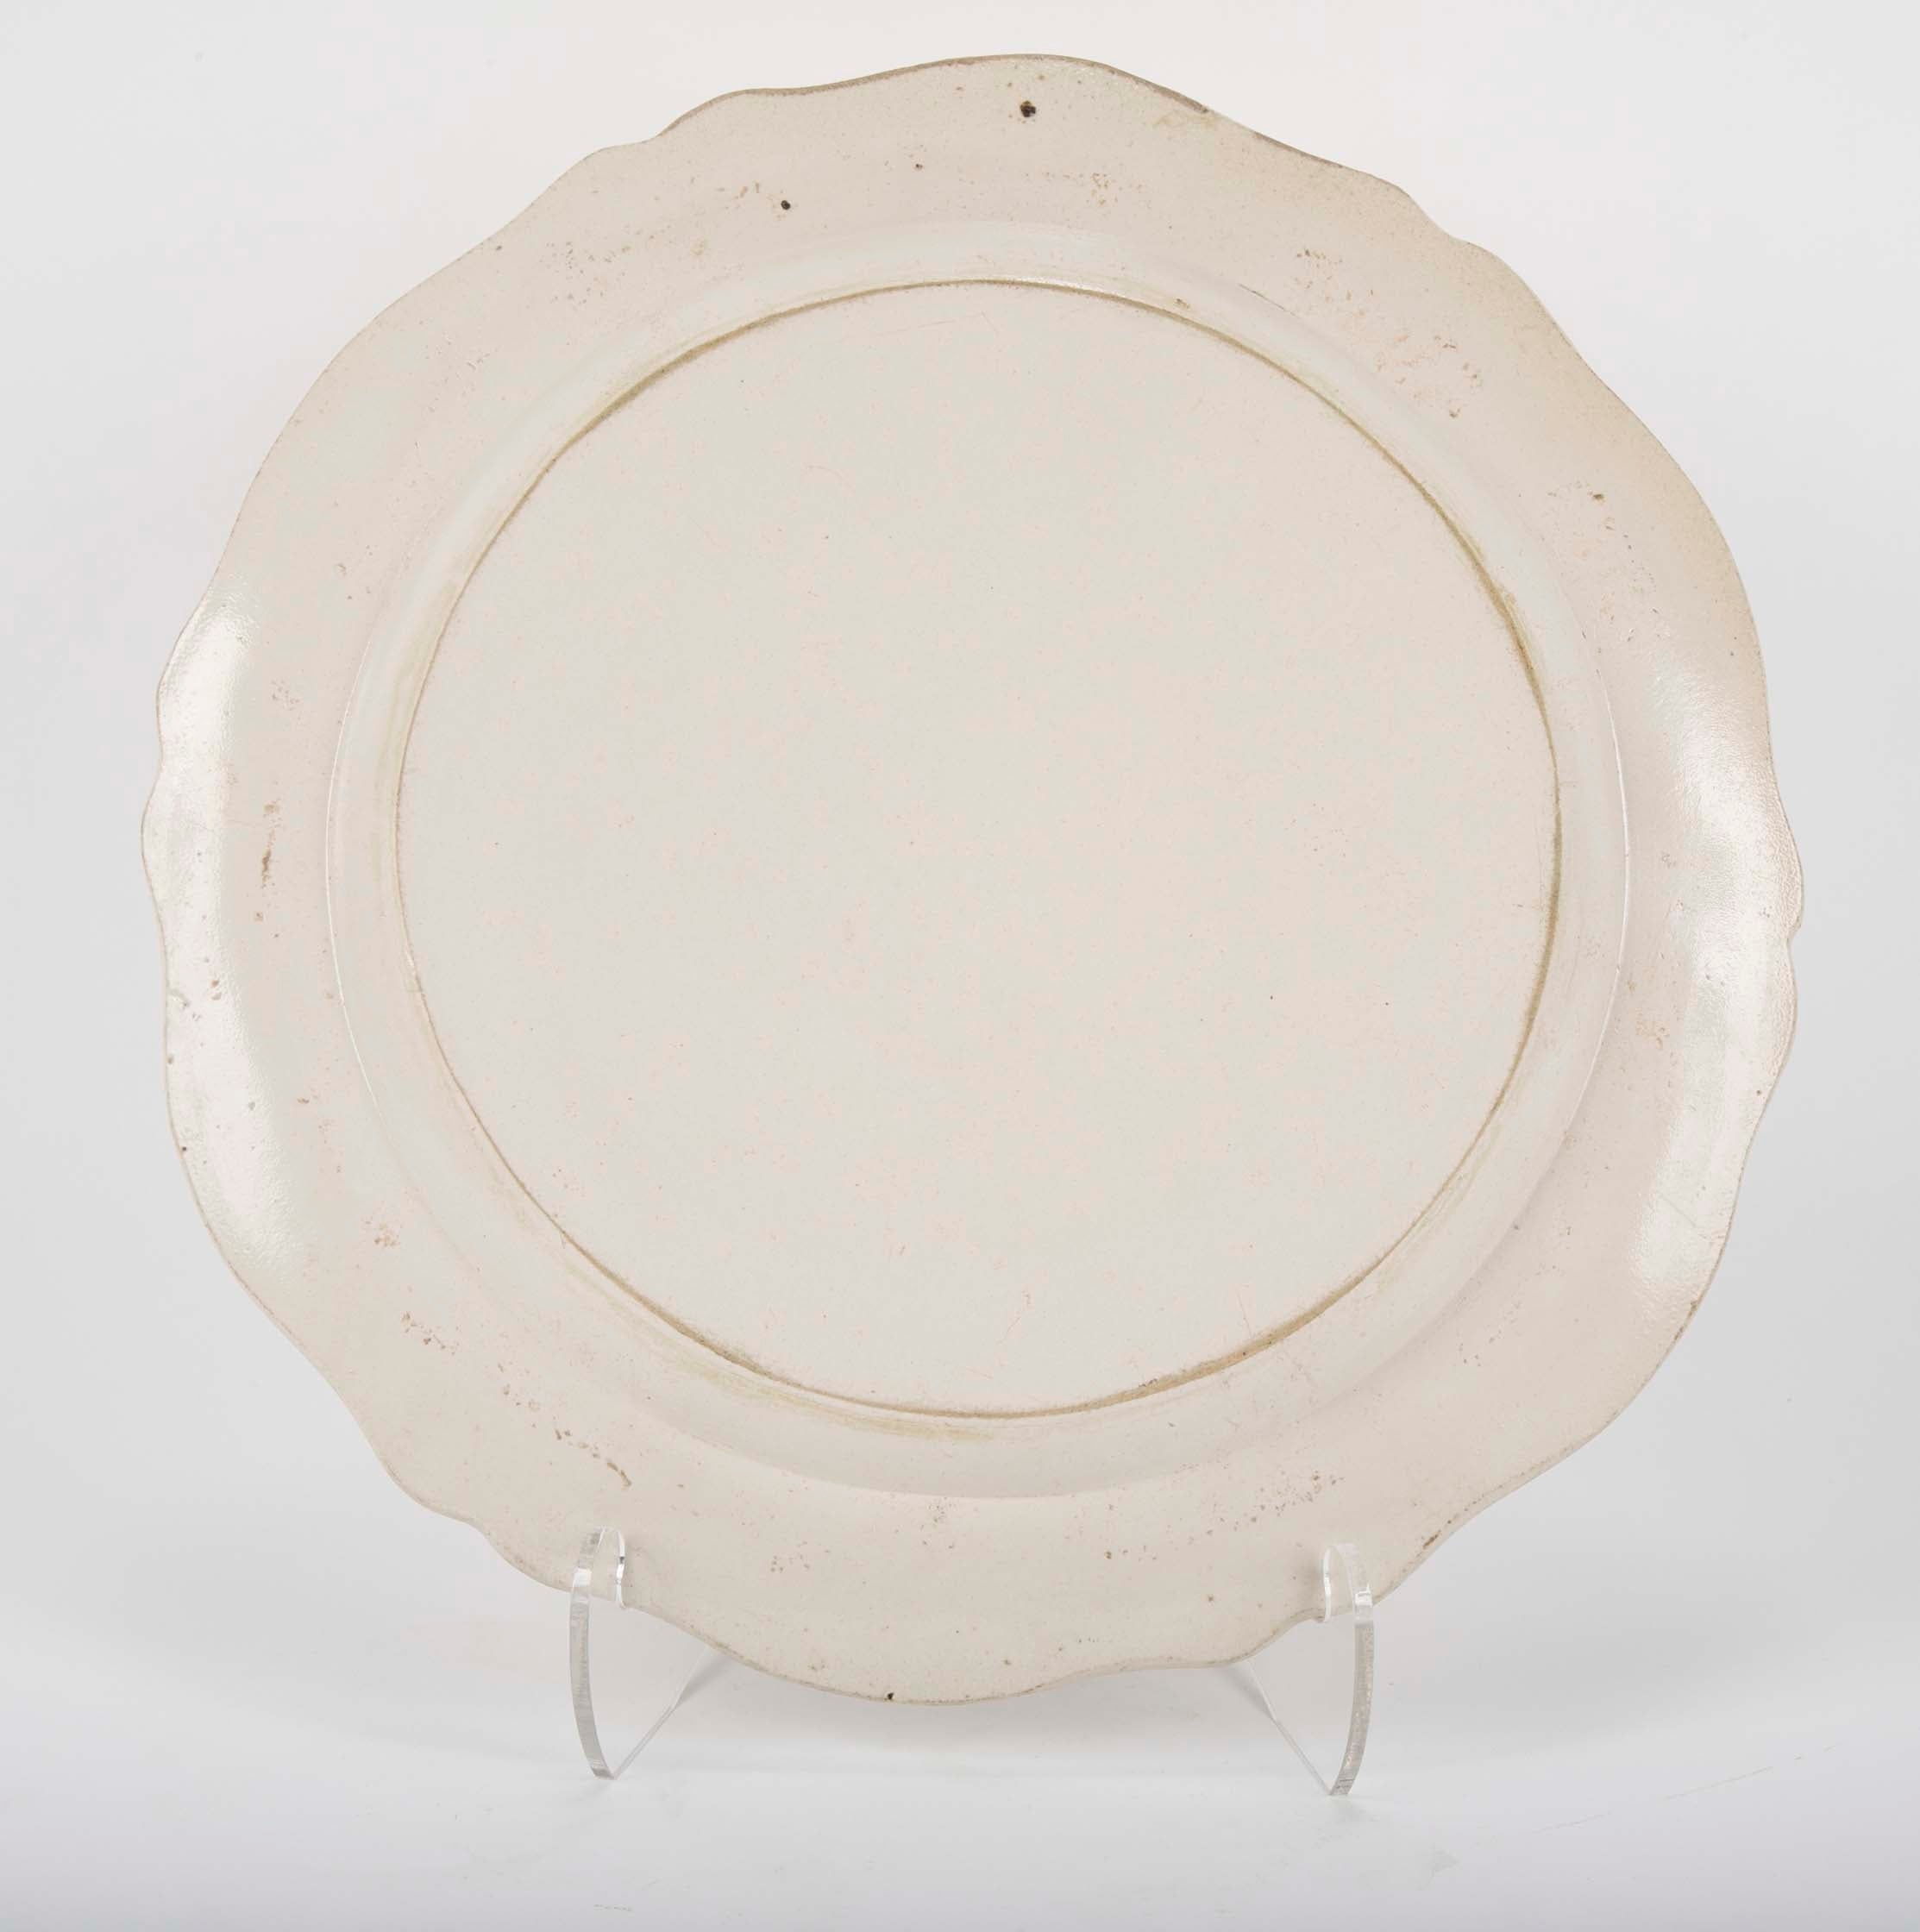 A Late 18th Century English Salt Glazed Charger